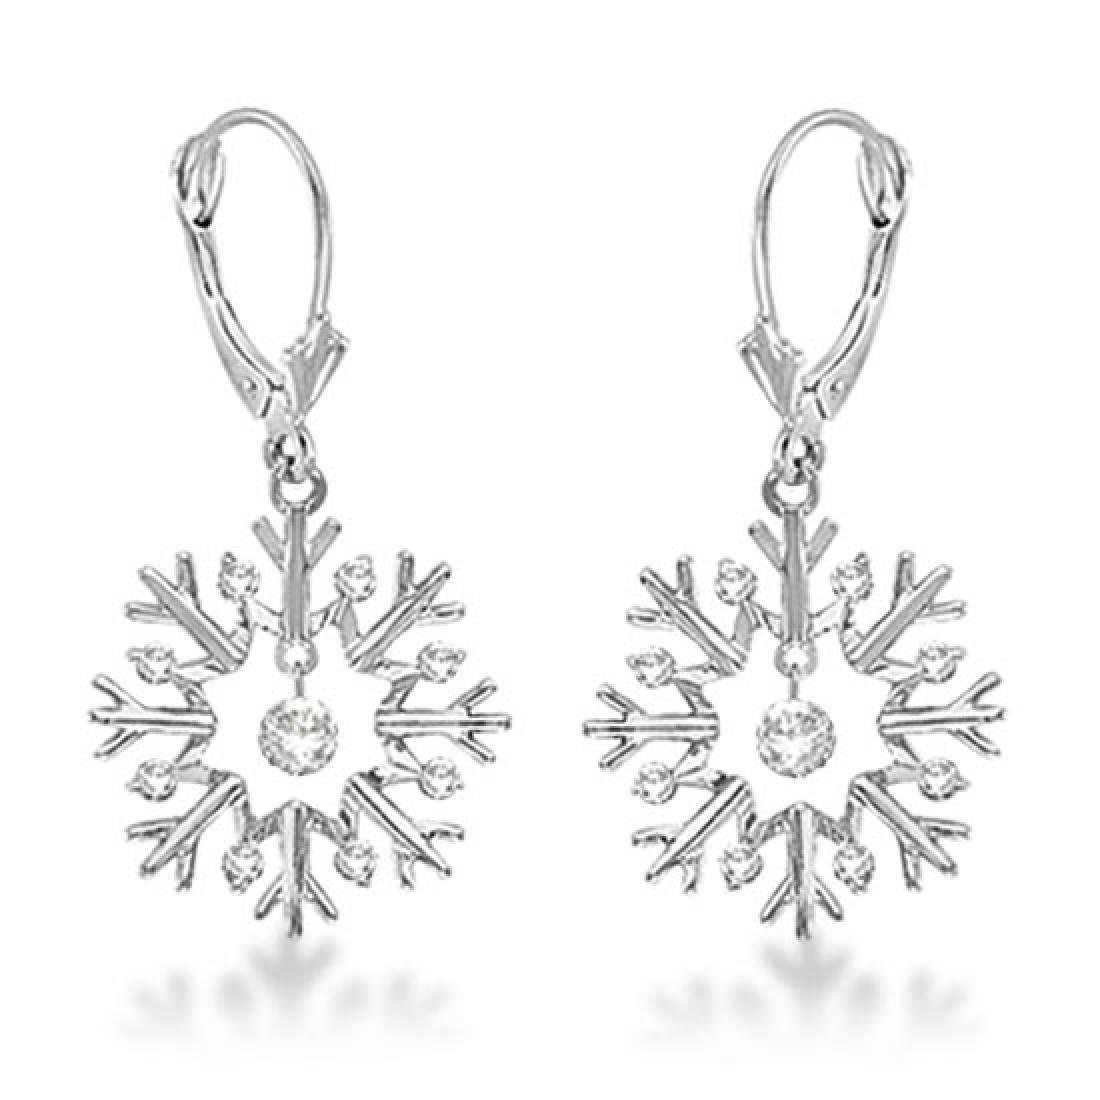 Snowflake Shaped Dangle Drop Diamond Earrings 14K White